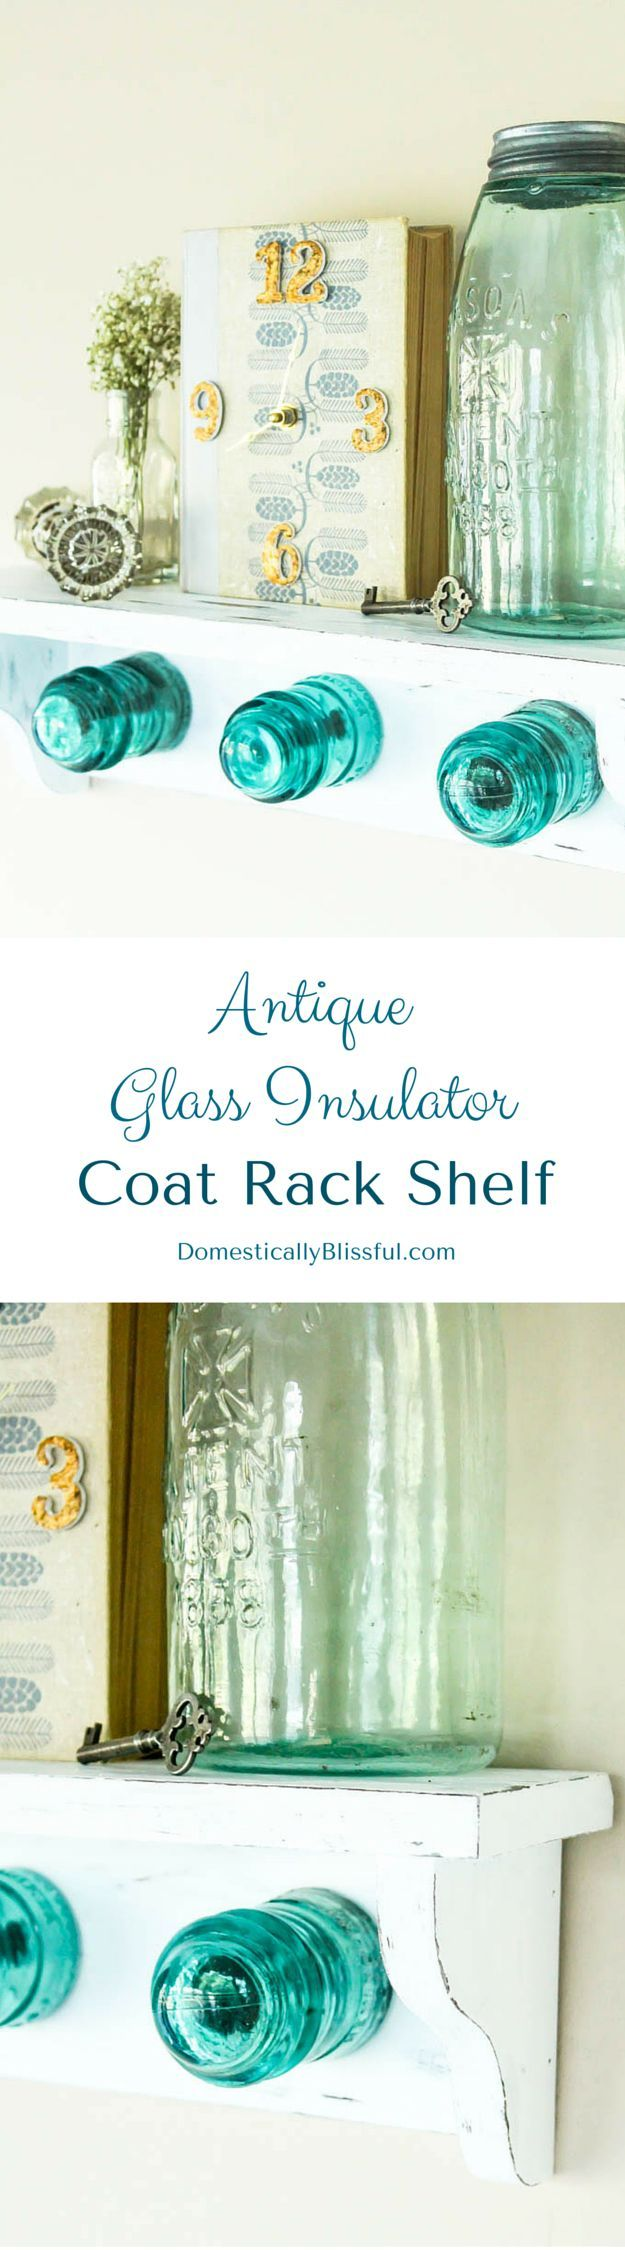 Antique Glass Insulator Coat Rack Shelf tutorial with a little story behind finding these beautiful blue insulators!